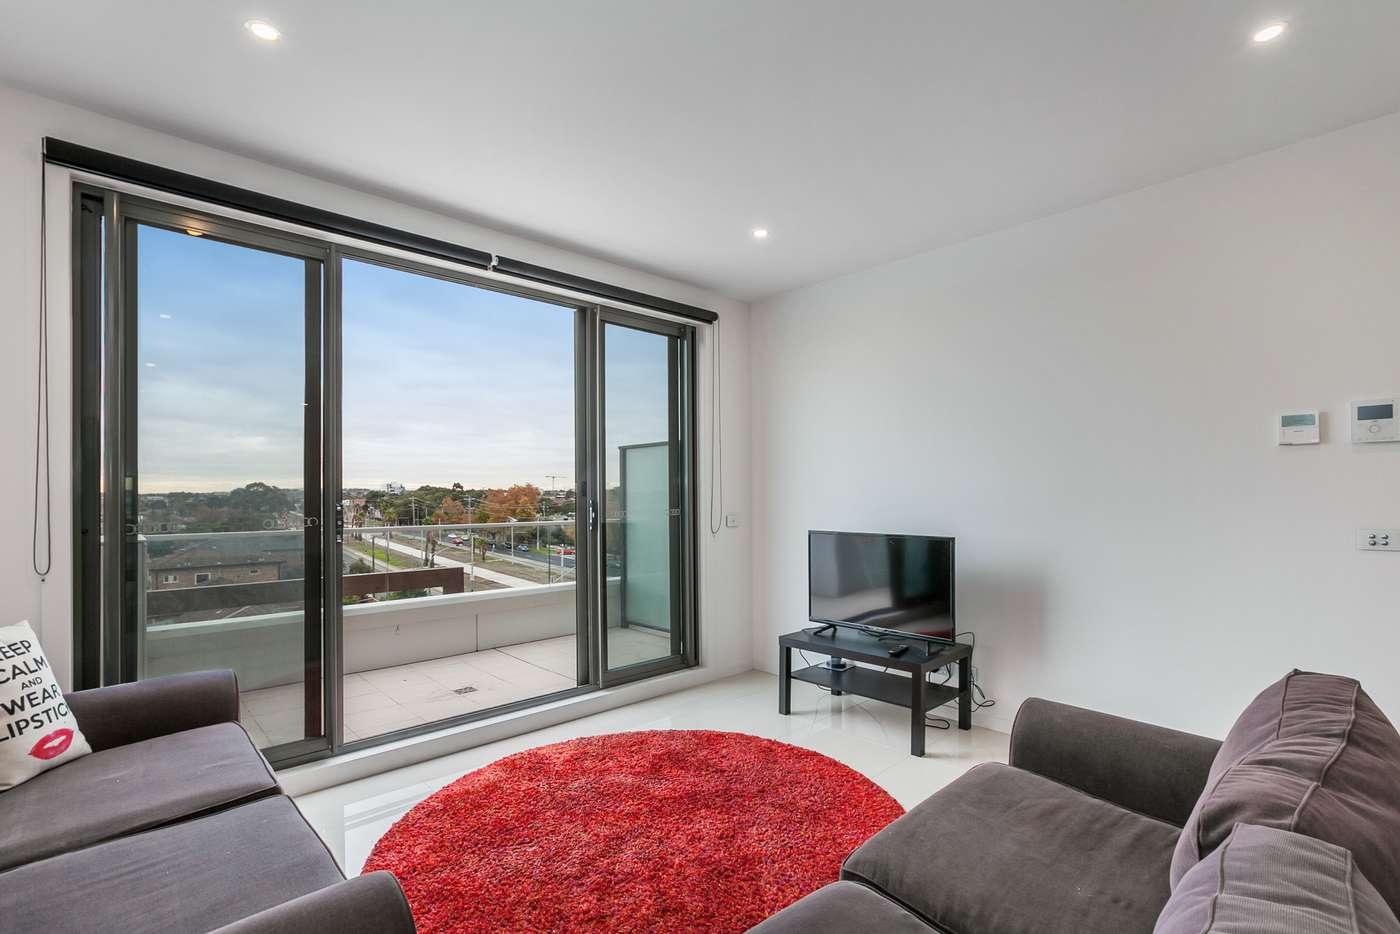 Fifth view of Homely apartment listing, 402/85 Hutton Street, Thornbury VIC 3071